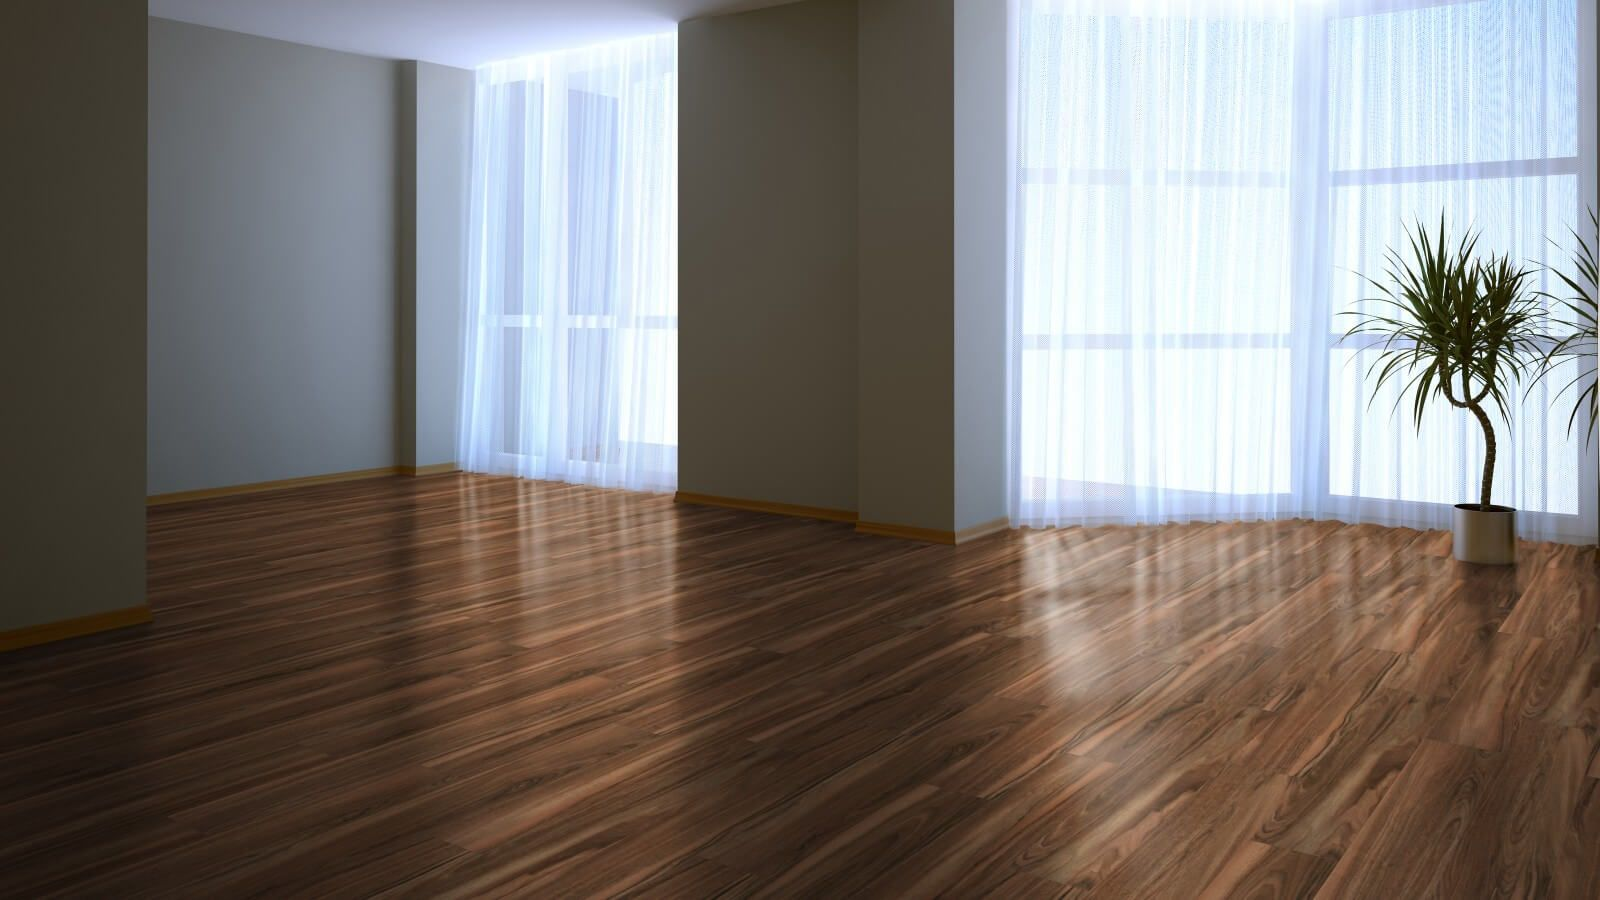 Laminate Floor Finishing Types, Description, Properties. The high-gloss laminate in the large living room of private house